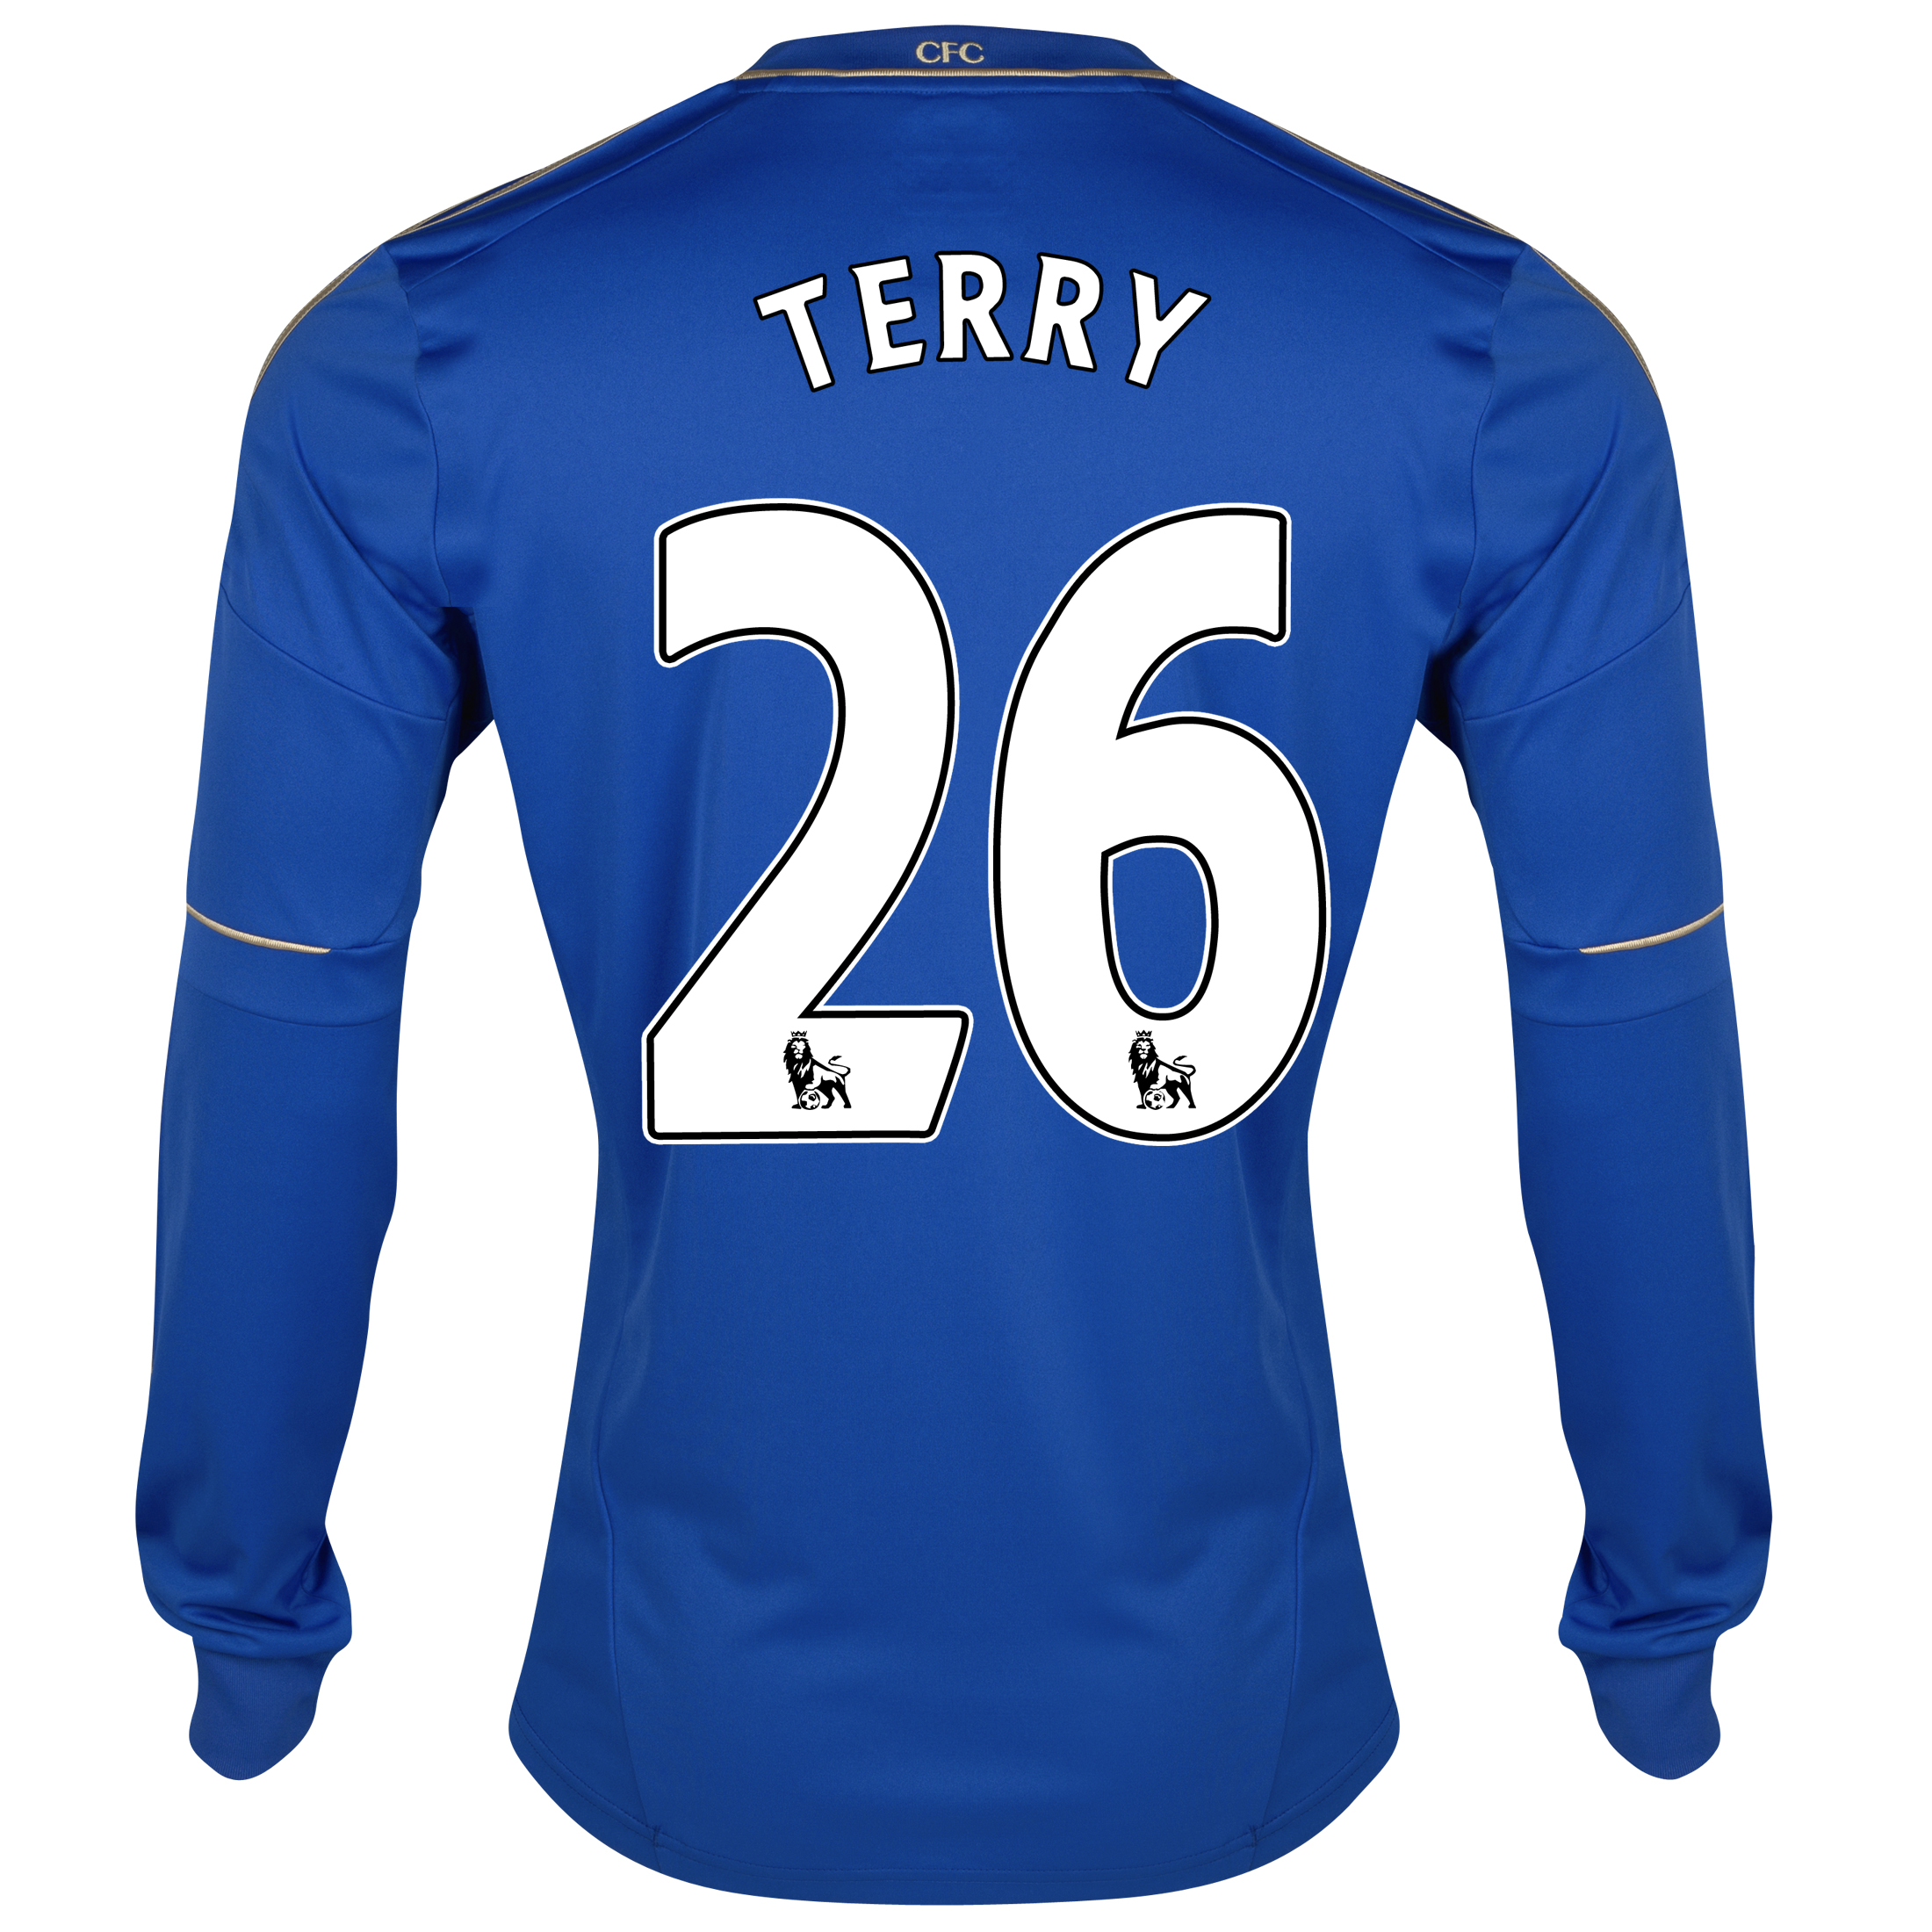 Chelsea Home Shirt 2012/13 - Long Sleeved with Terry 26 printing